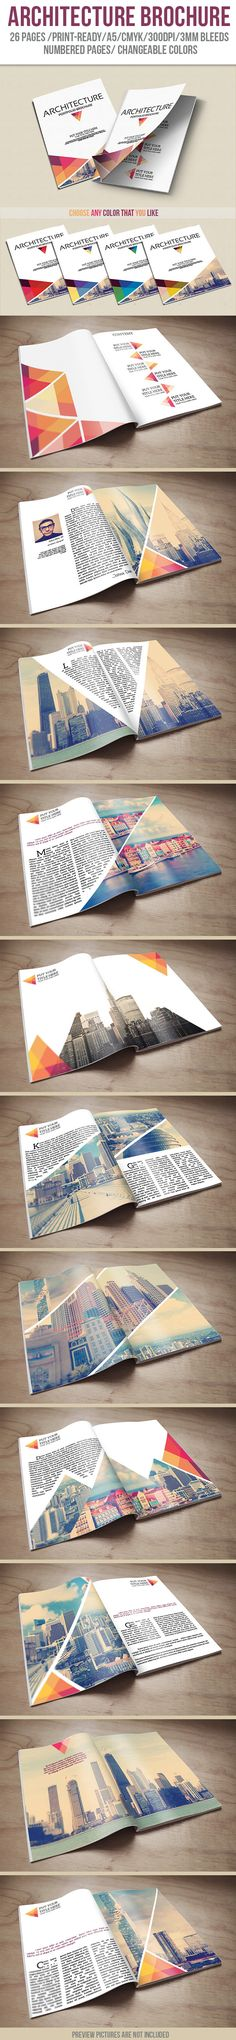 In-design CS6 + Idml CS4 or lowerThis is a architecture and modern looking brochure style template. You can change your own text and pictures. This is perfect for any kind of architecture portfolio, brochure, magazine or any other purpose. Easy customiz…